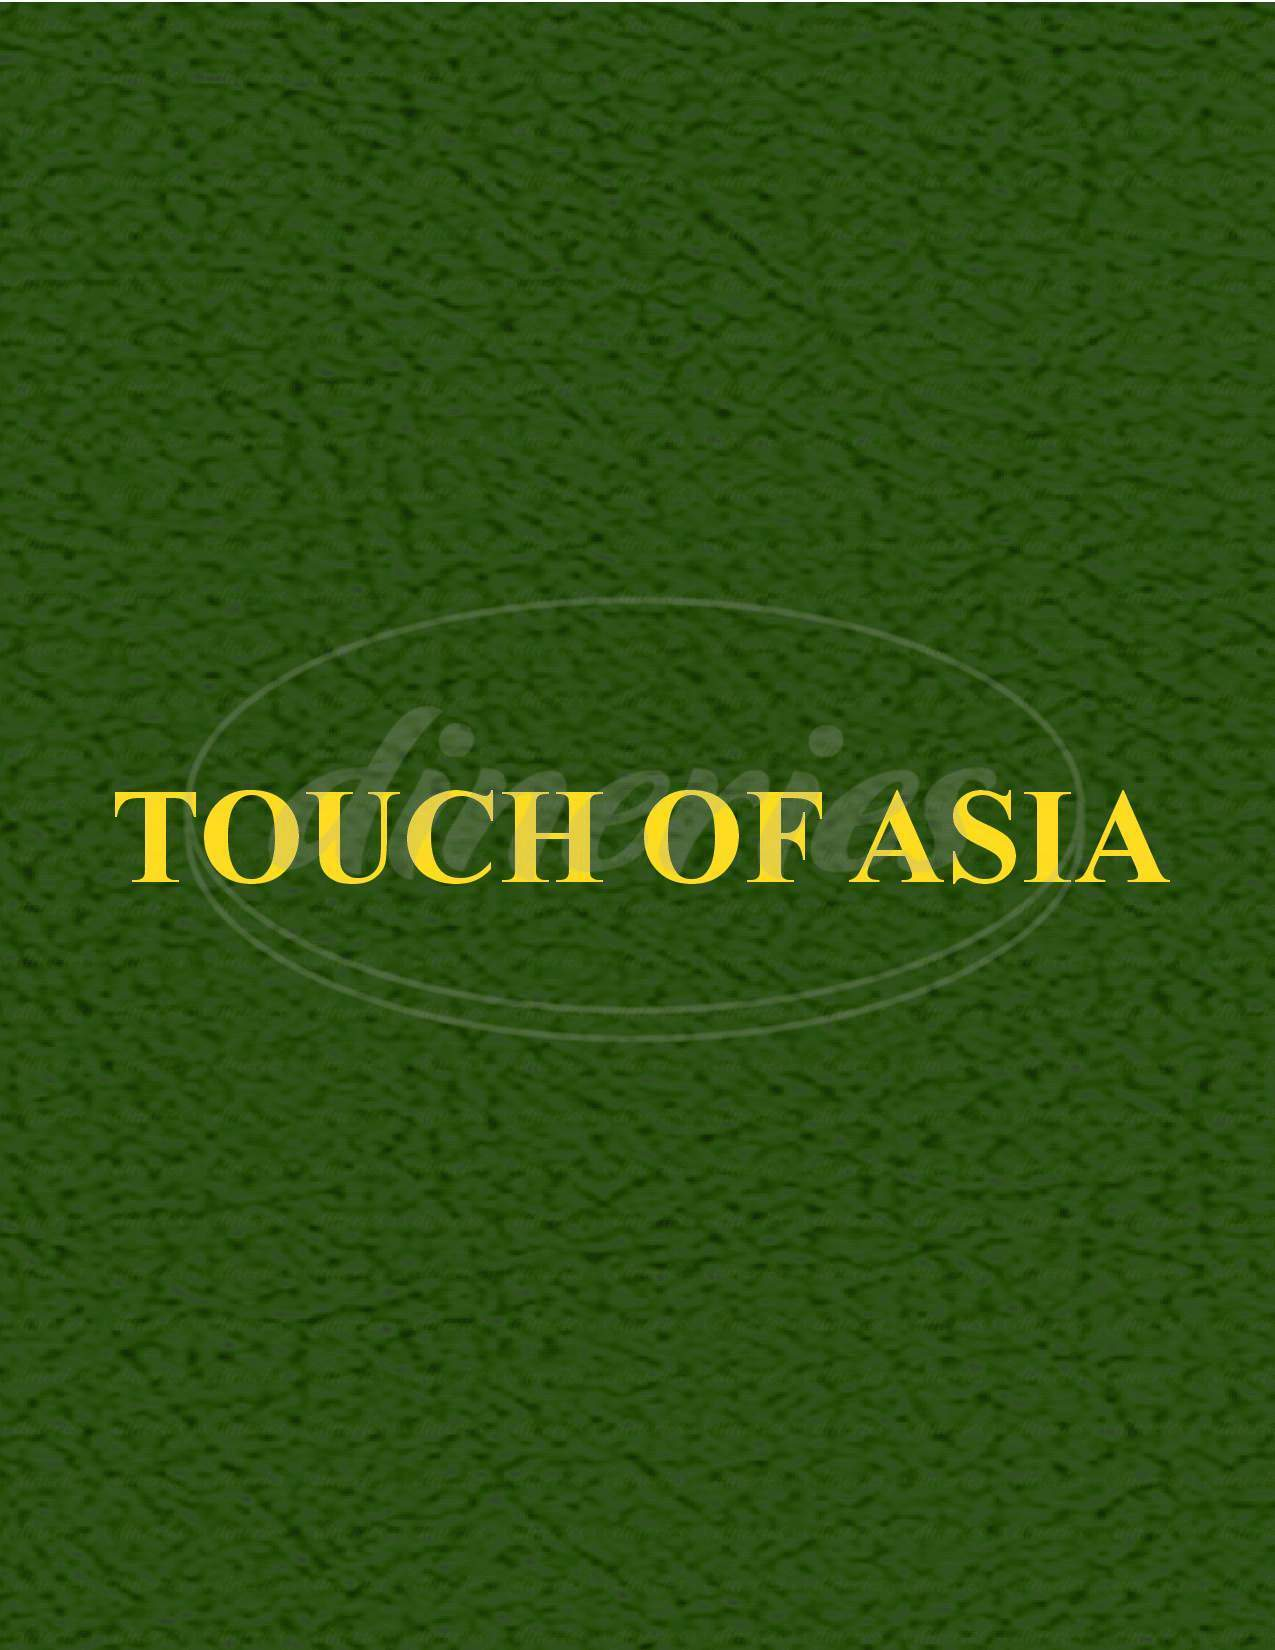 menu for Touch of Asia